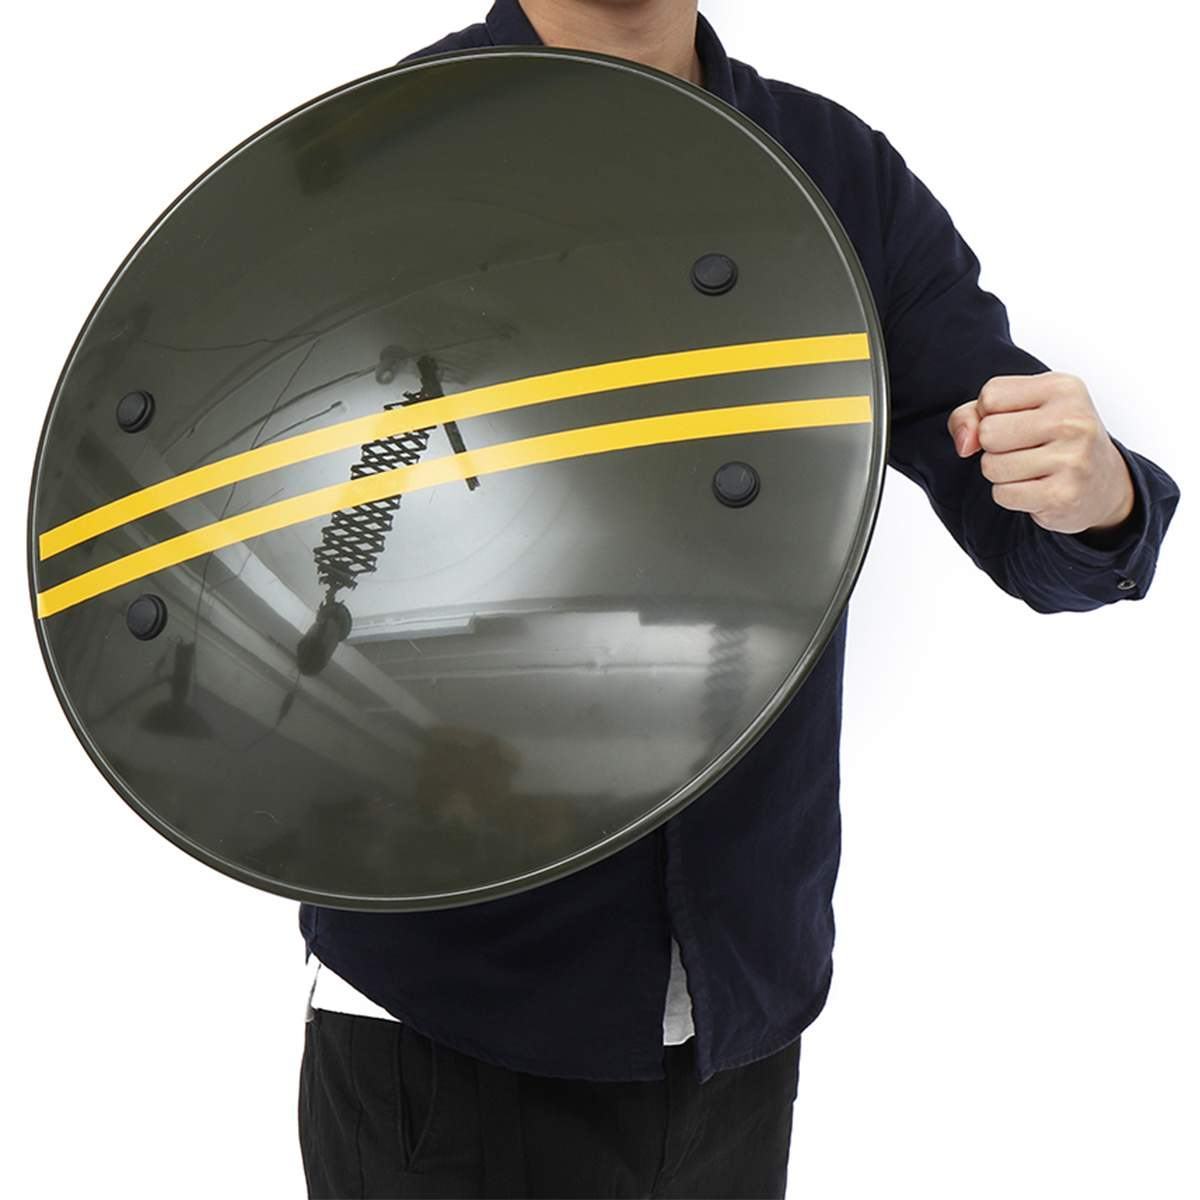 PC Round Anti-Riot Circular Shield Tactical CS Campus Self Defend Tool Self Defend  Protection Self Defend SuppliesPC Round Anti-Riot Circular Shield Tactical CS Campus Self Defend Tool Self Defend  Protection Self Defend Supplies